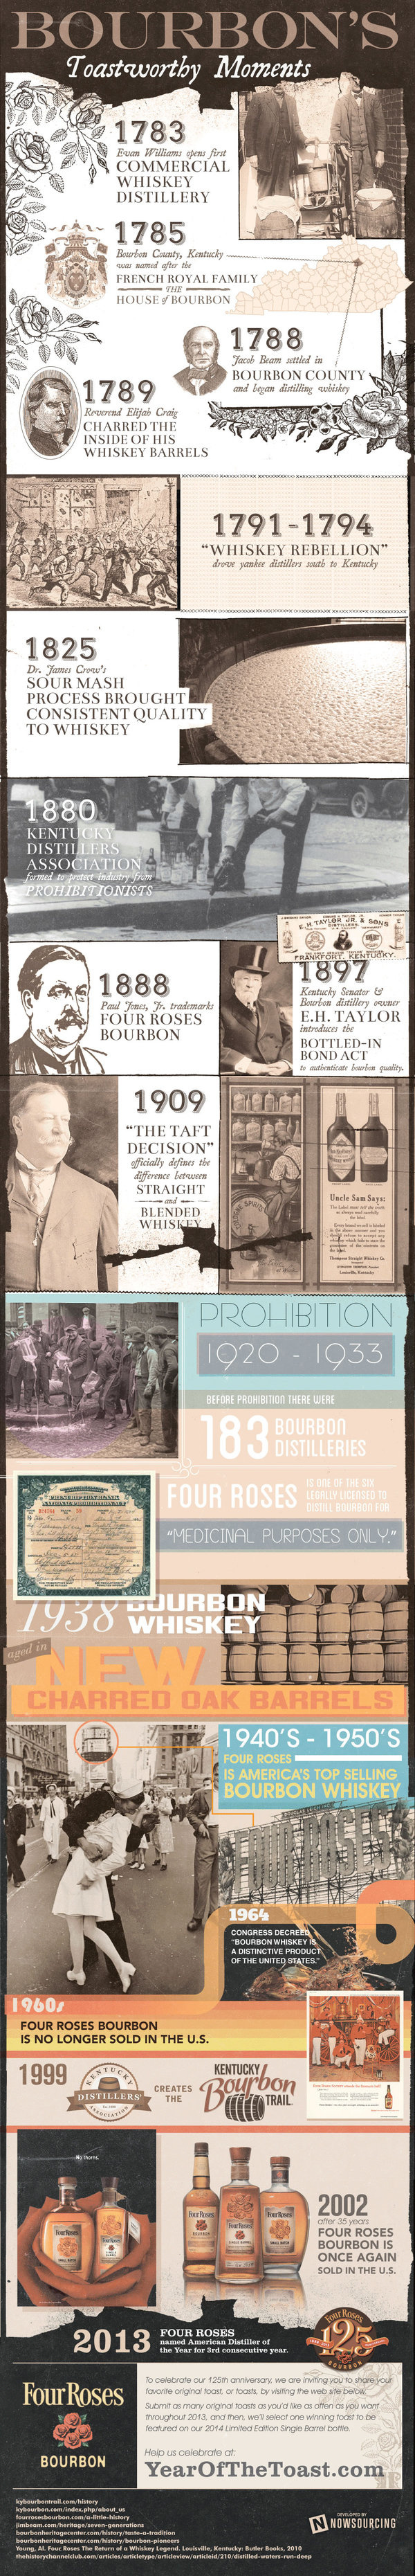 125 years of Bourbon History - Four Roses Bourbon #four #prohibition #roses #kentucky #bourbon